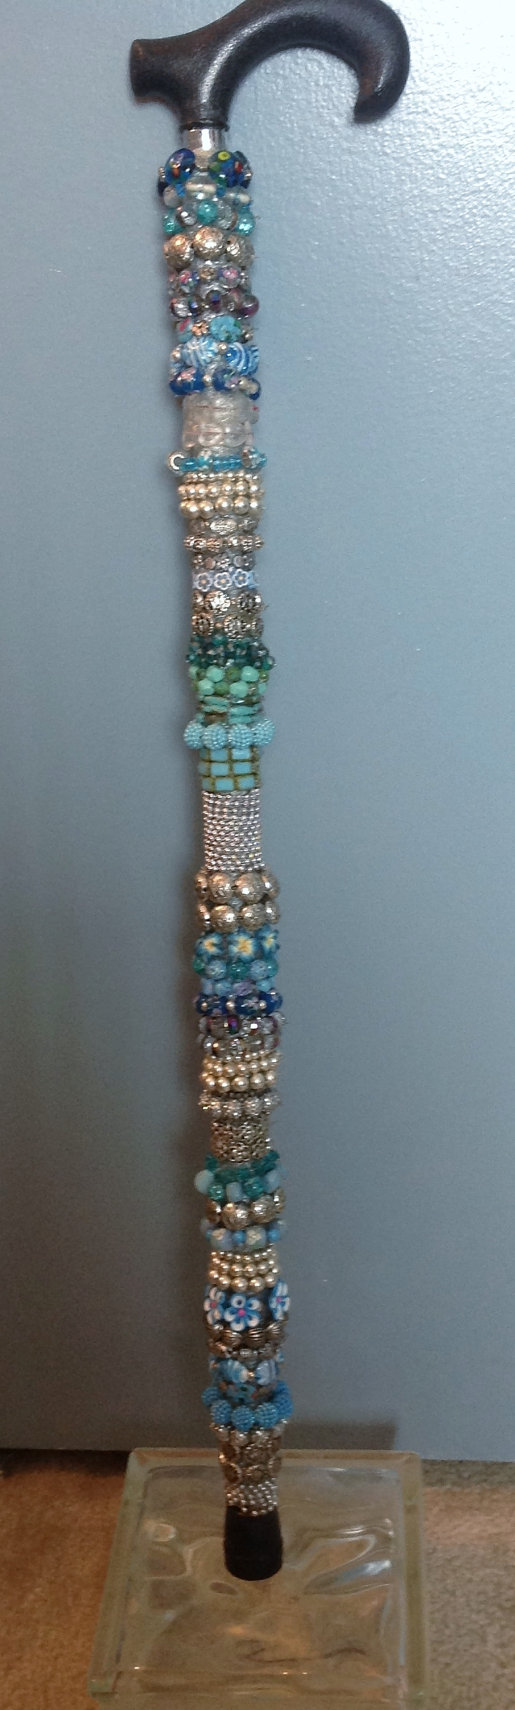 How To Decorate A Cane Decorative Beaded Cane and Walking Stick My60 Decorating Etsy 2